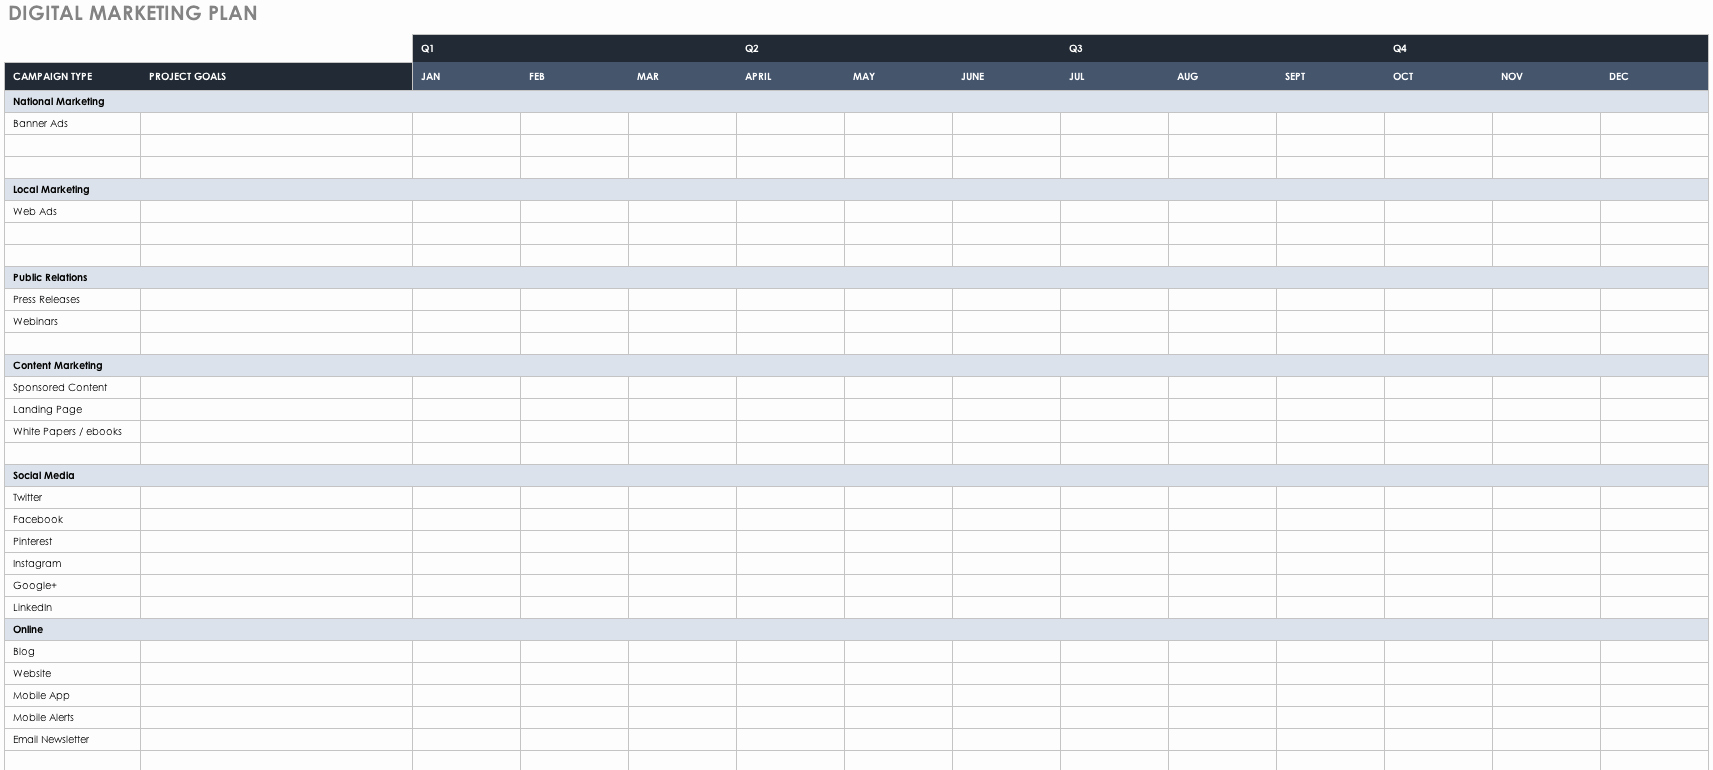 Digital Marketing Campaign Template Awesome Free Marketing Plan Templates for Excel